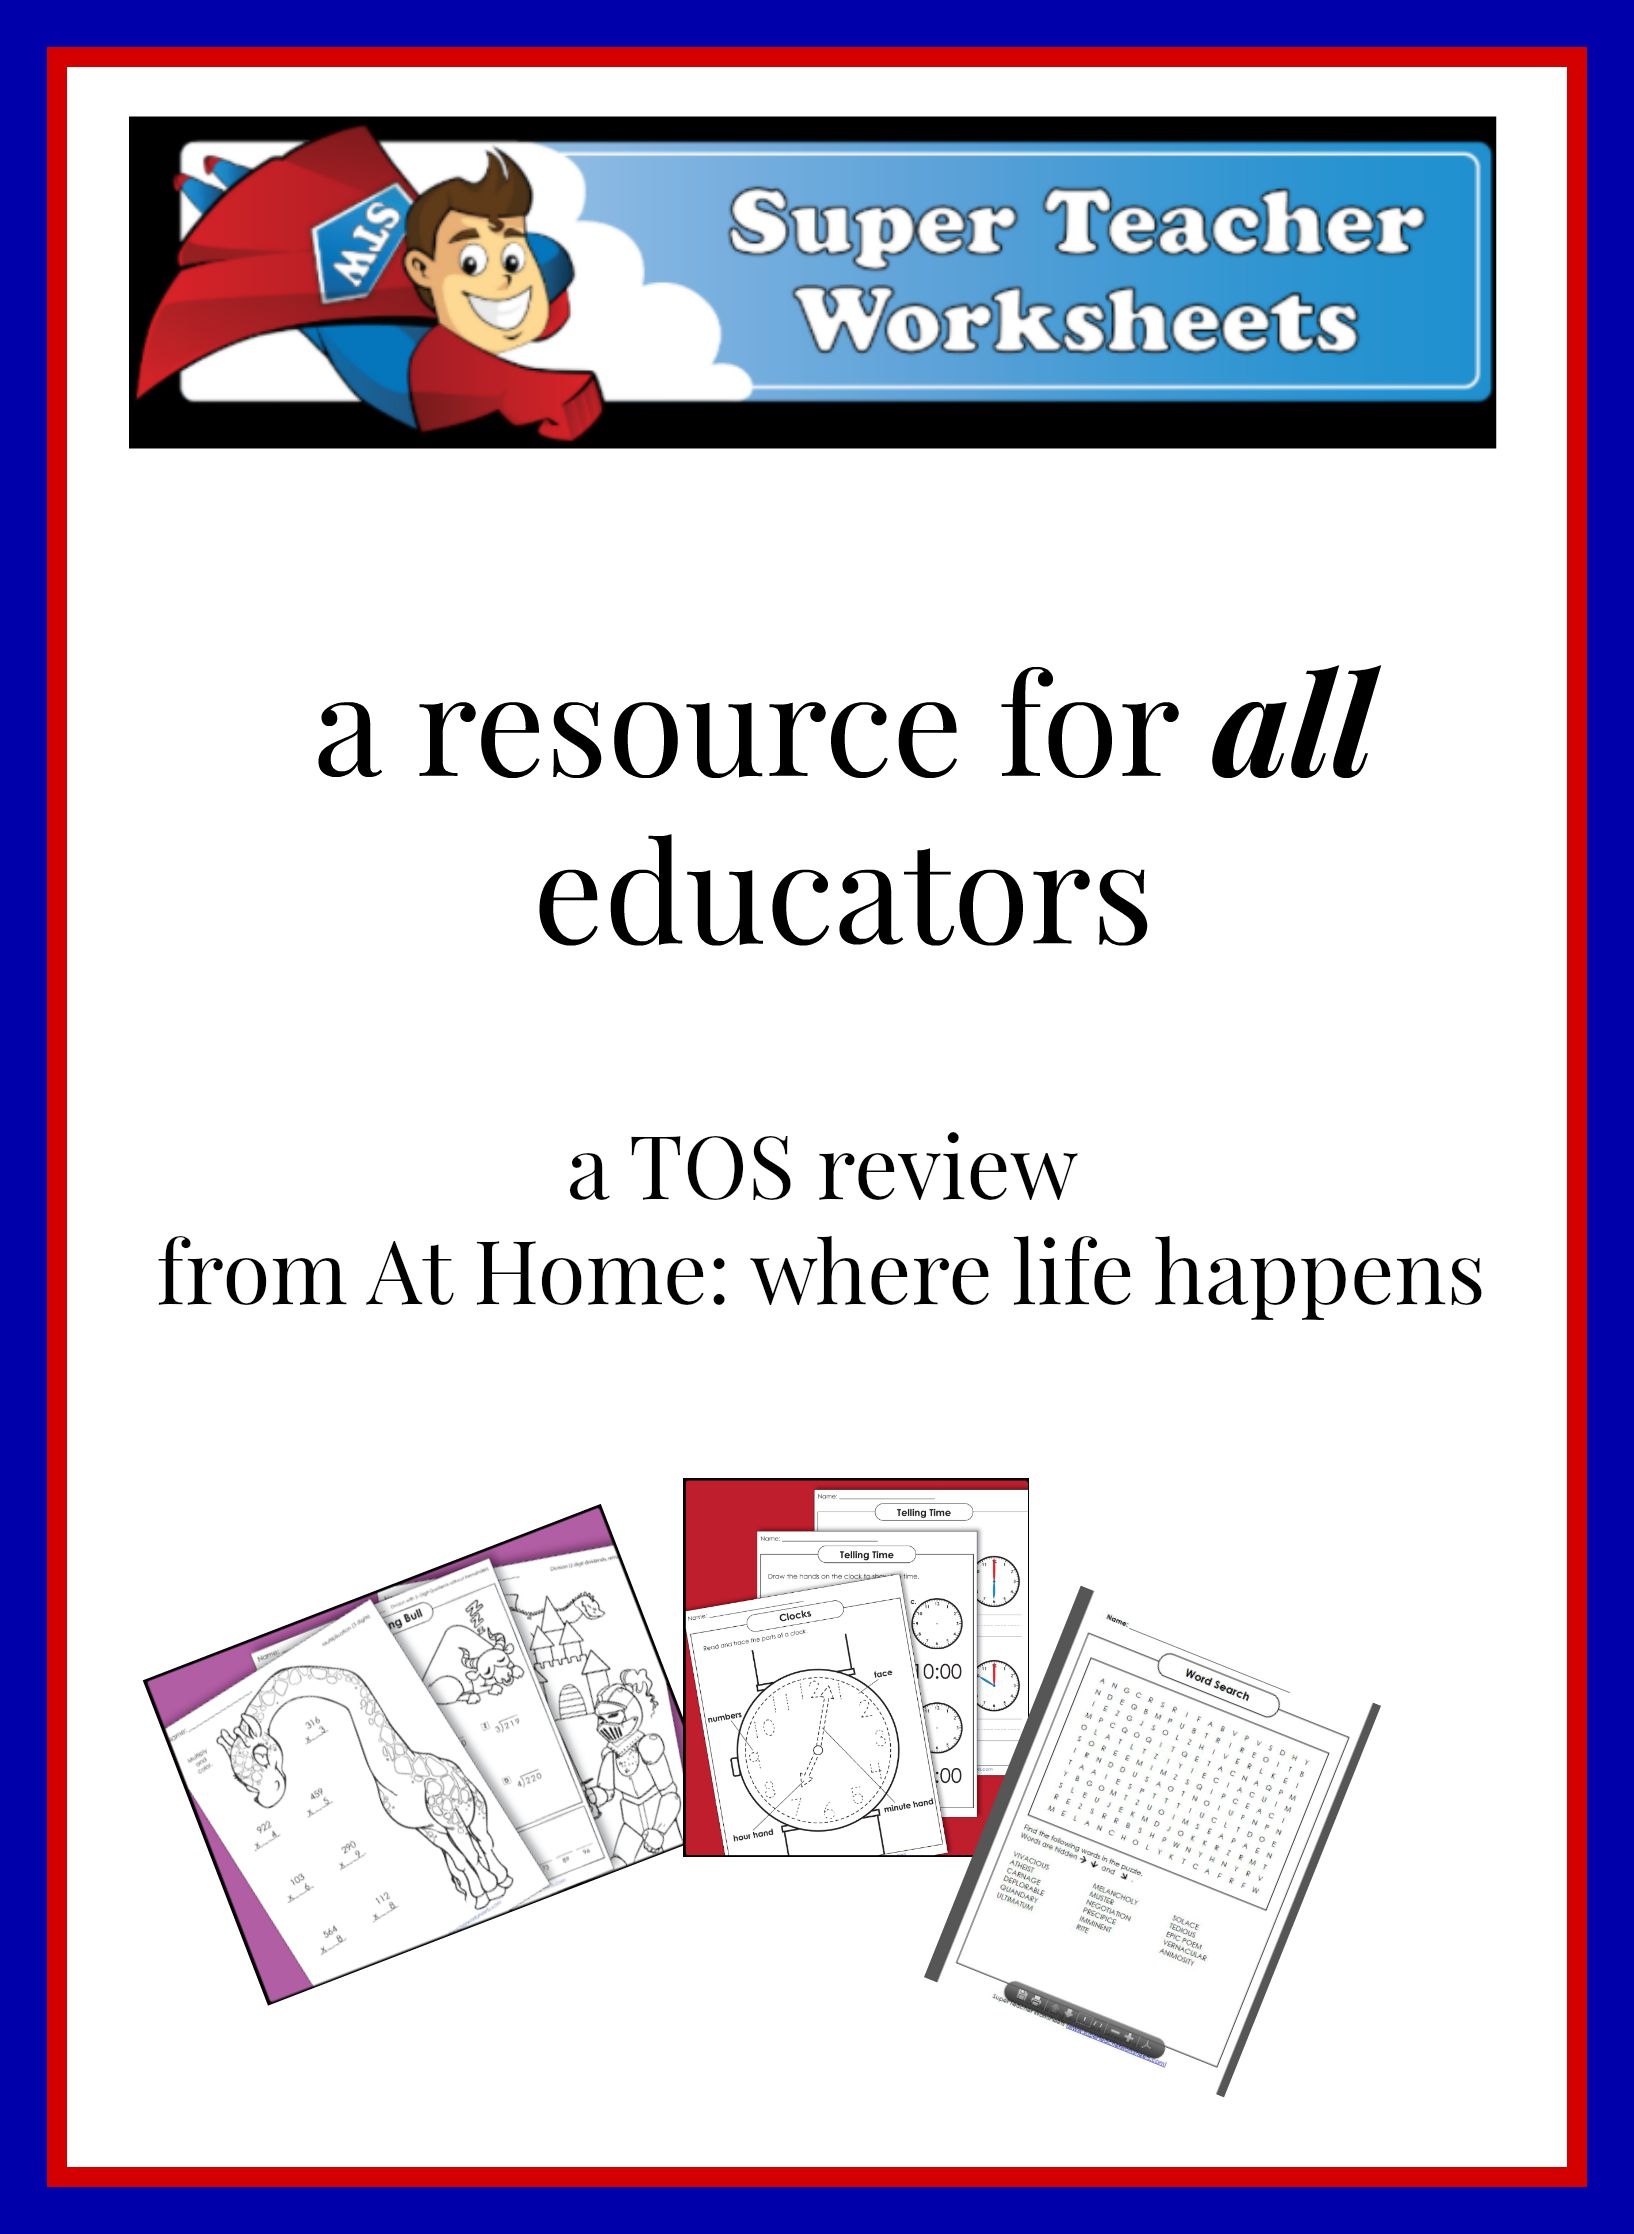 Worksheets Home 2015: Super Teacher Worksheets   a TOS review   At Home,